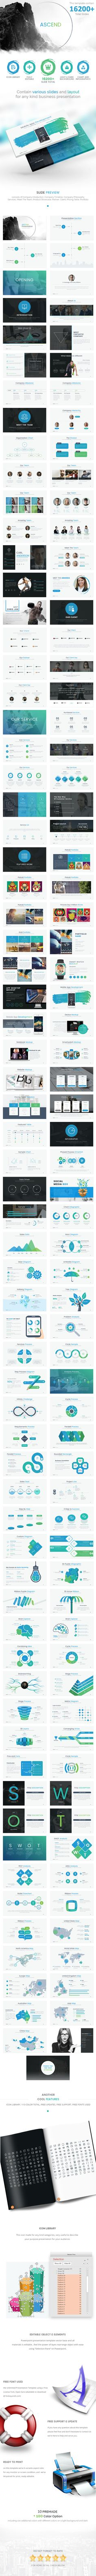 ASCEND - Presentation Templates  #marketing #geometrics #technology • Click here to download ! http://graphicriver.net/item/ascend-presentation-templates/16194083?ref=pxcr